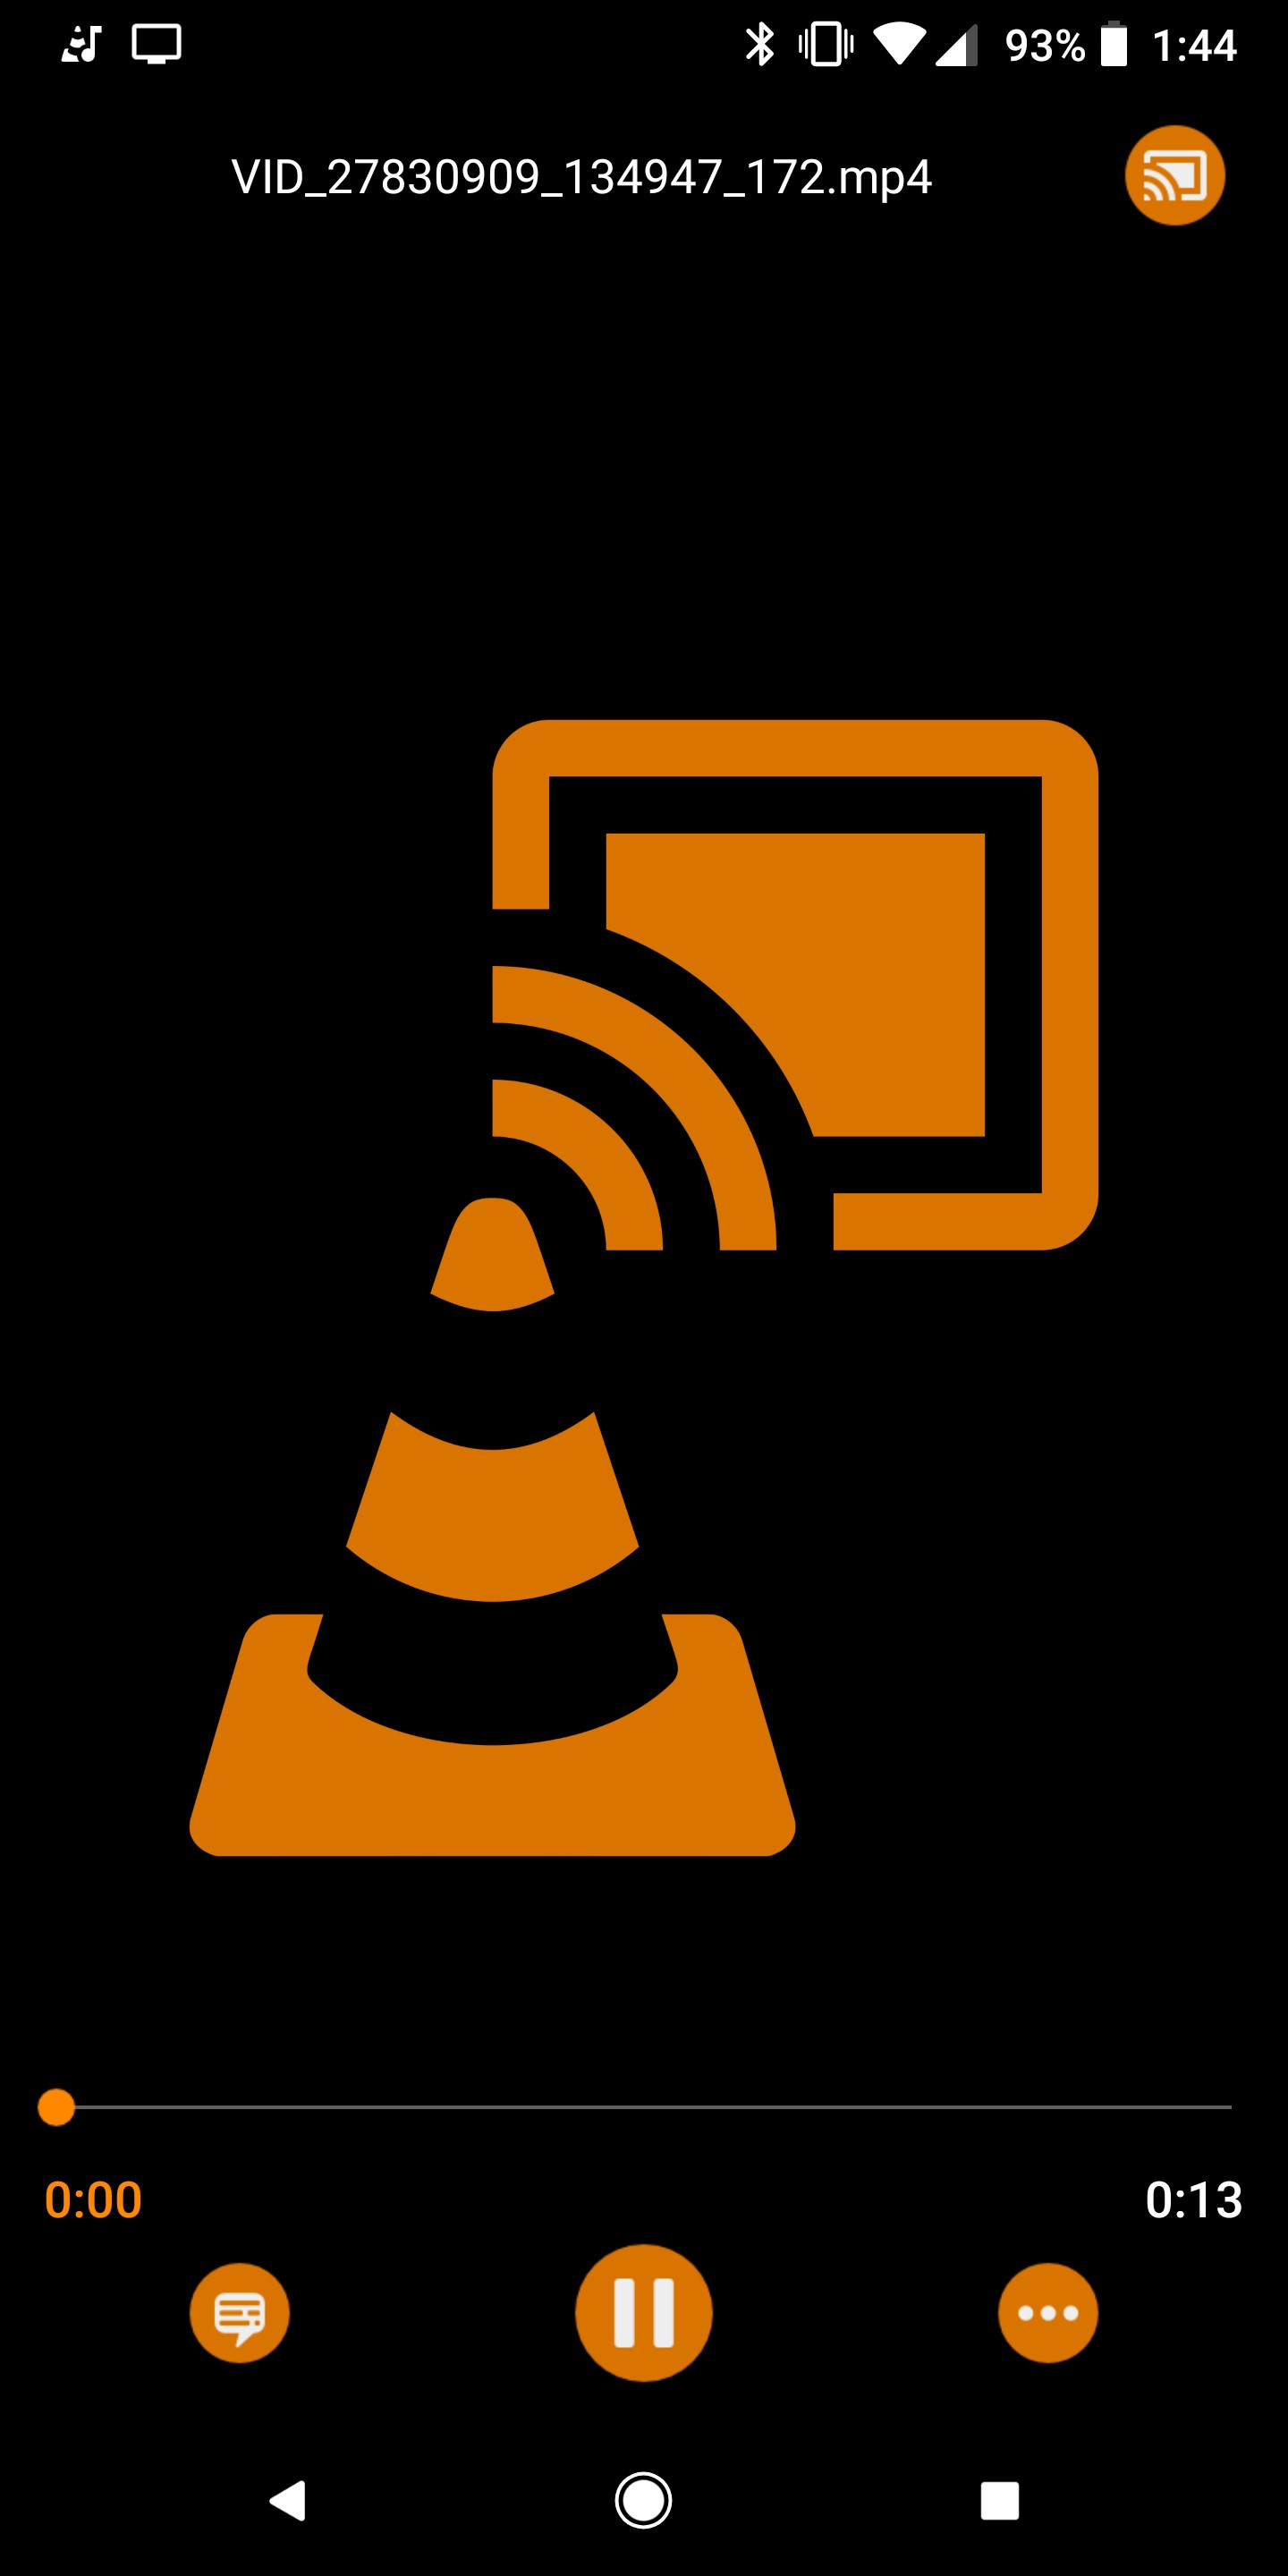 How to use VLC to cast local content from Android or Windows